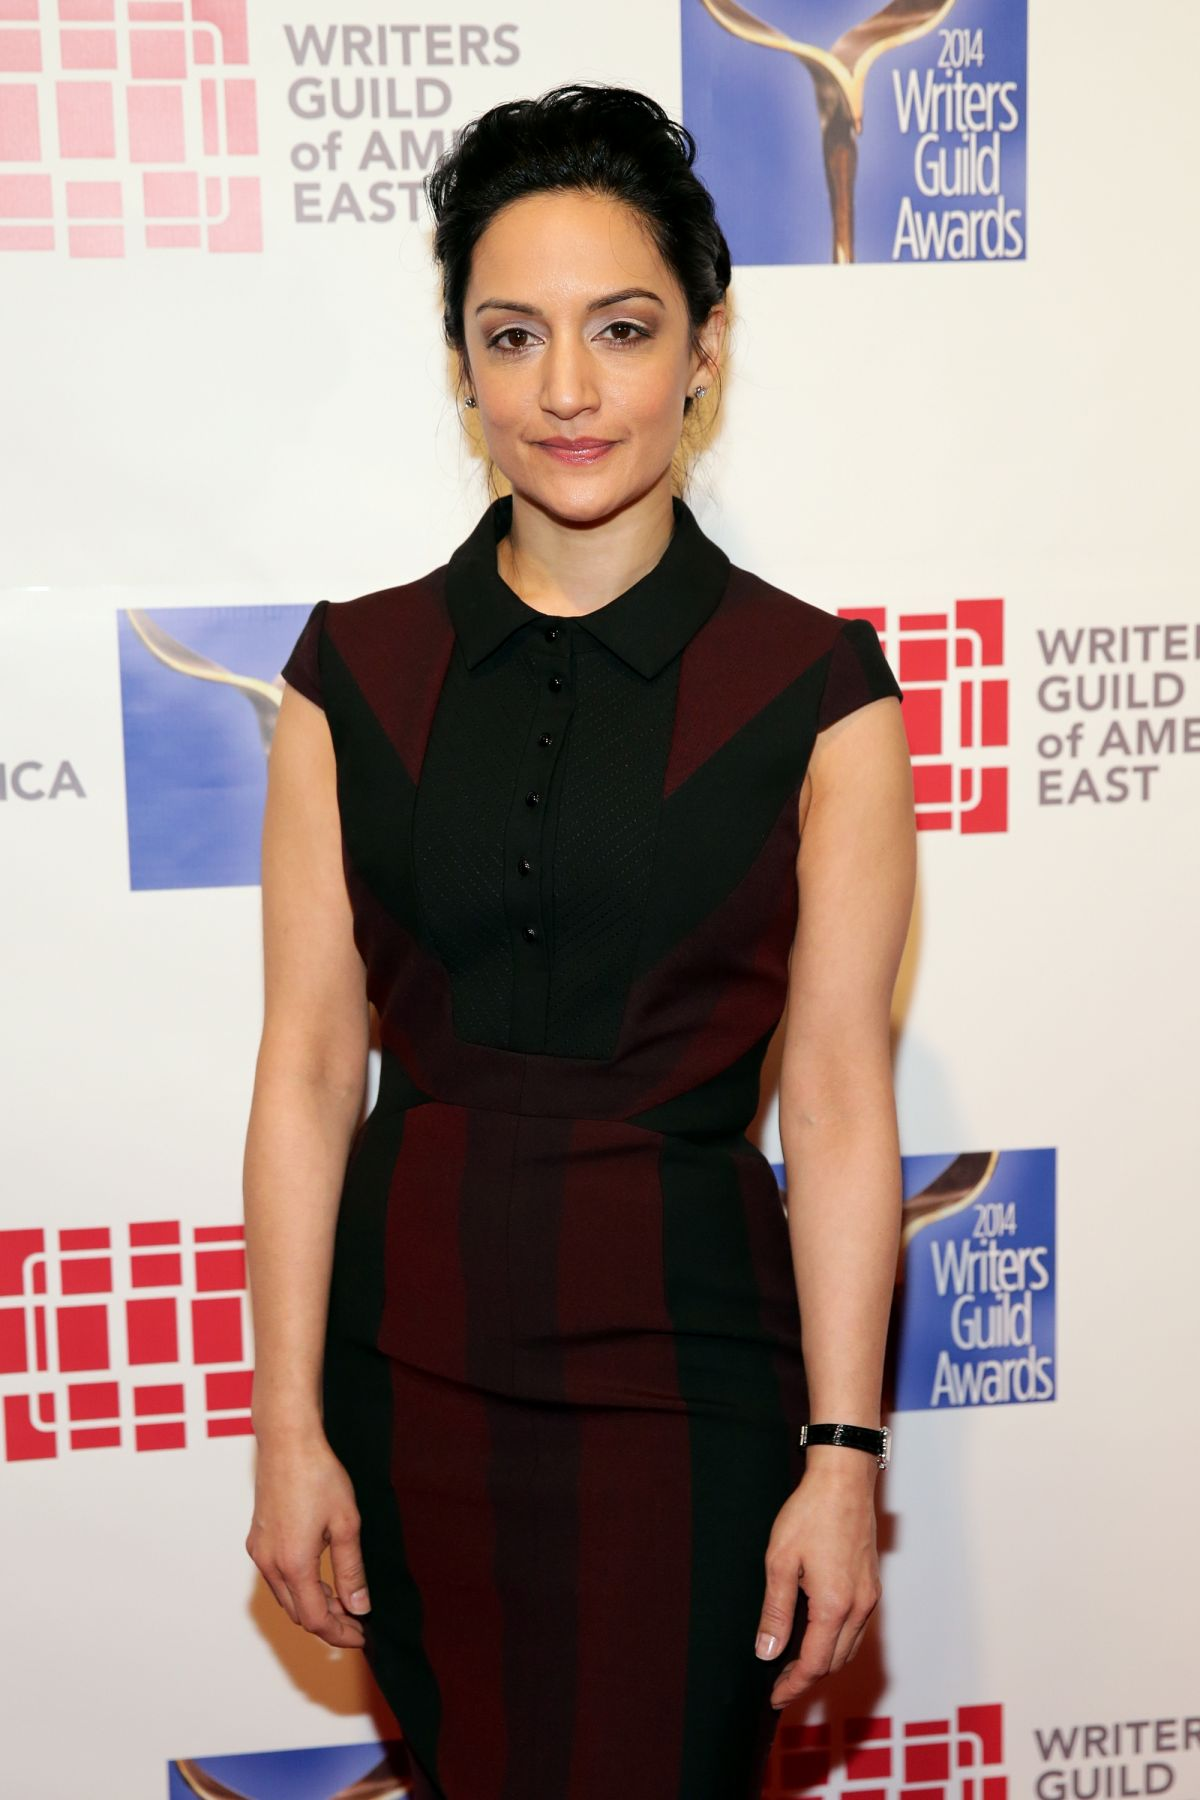 ARCHIE PANJABI at 2014 Writers Guild Awards in New York